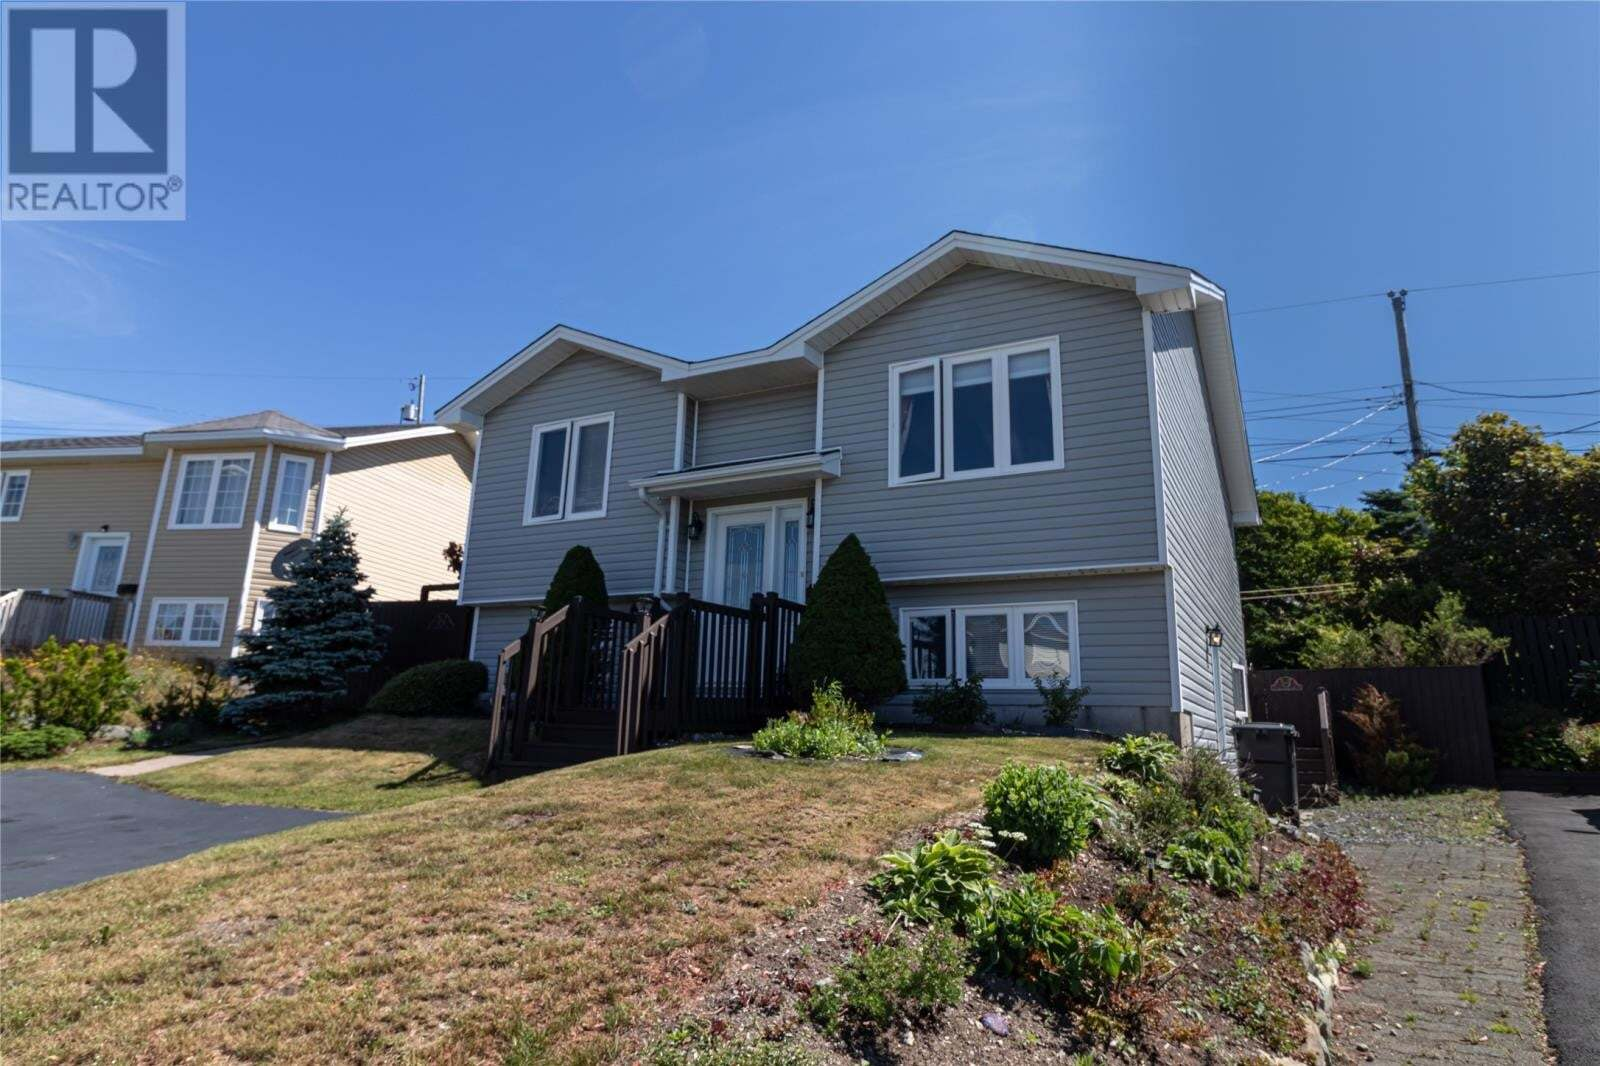 House for sale at 41 Dunluce Cres Mount Pearl Newfoundland - MLS: 1218499